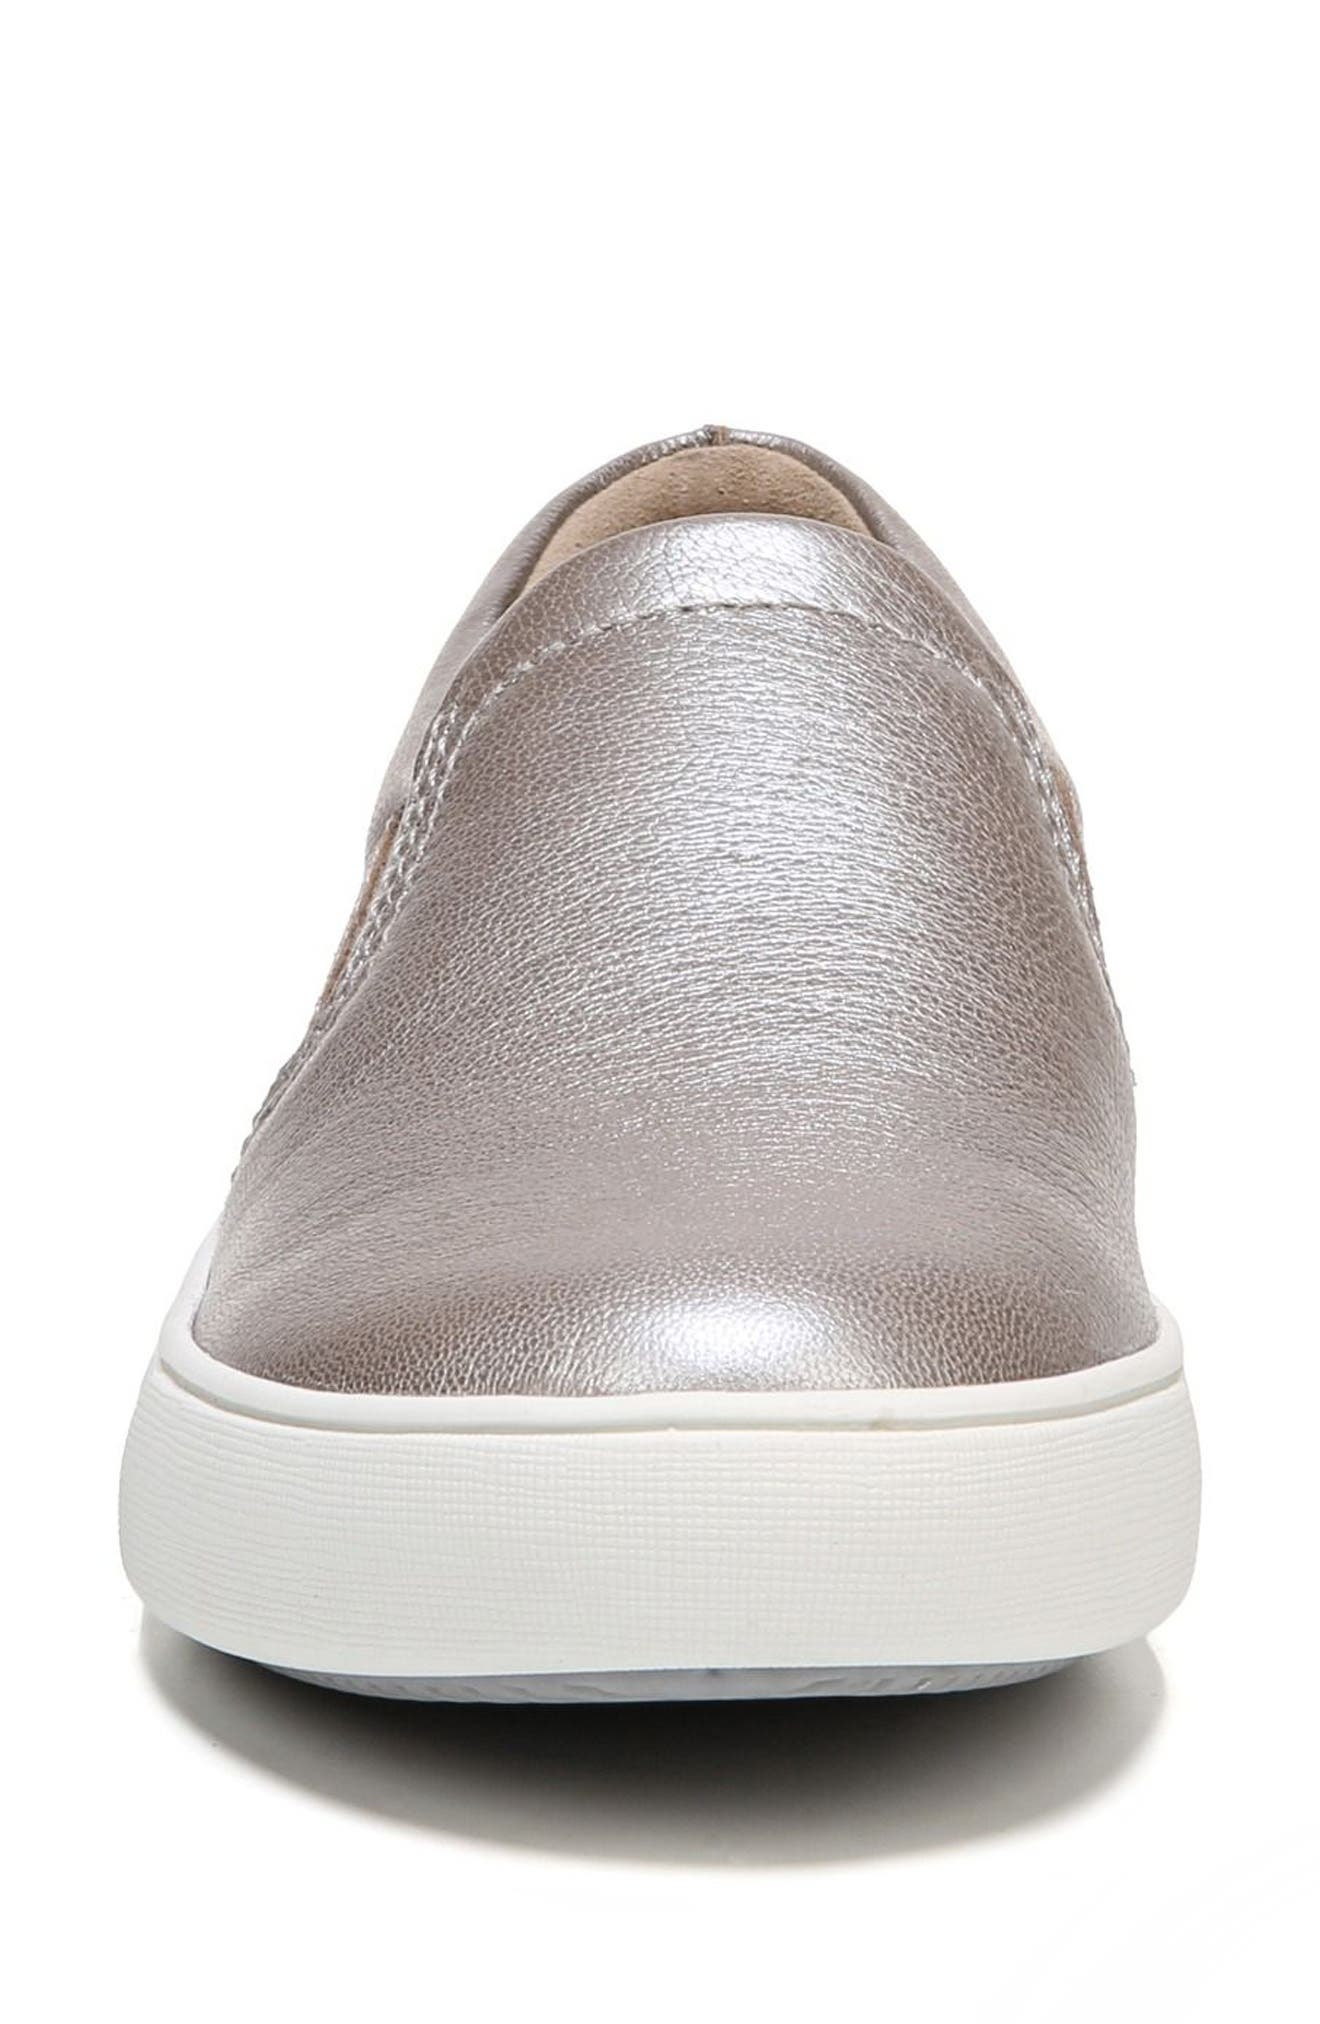 NATURALIZER, Marianne Slip-On Sneaker, Alternate thumbnail 4, color, SILVER LEATHER